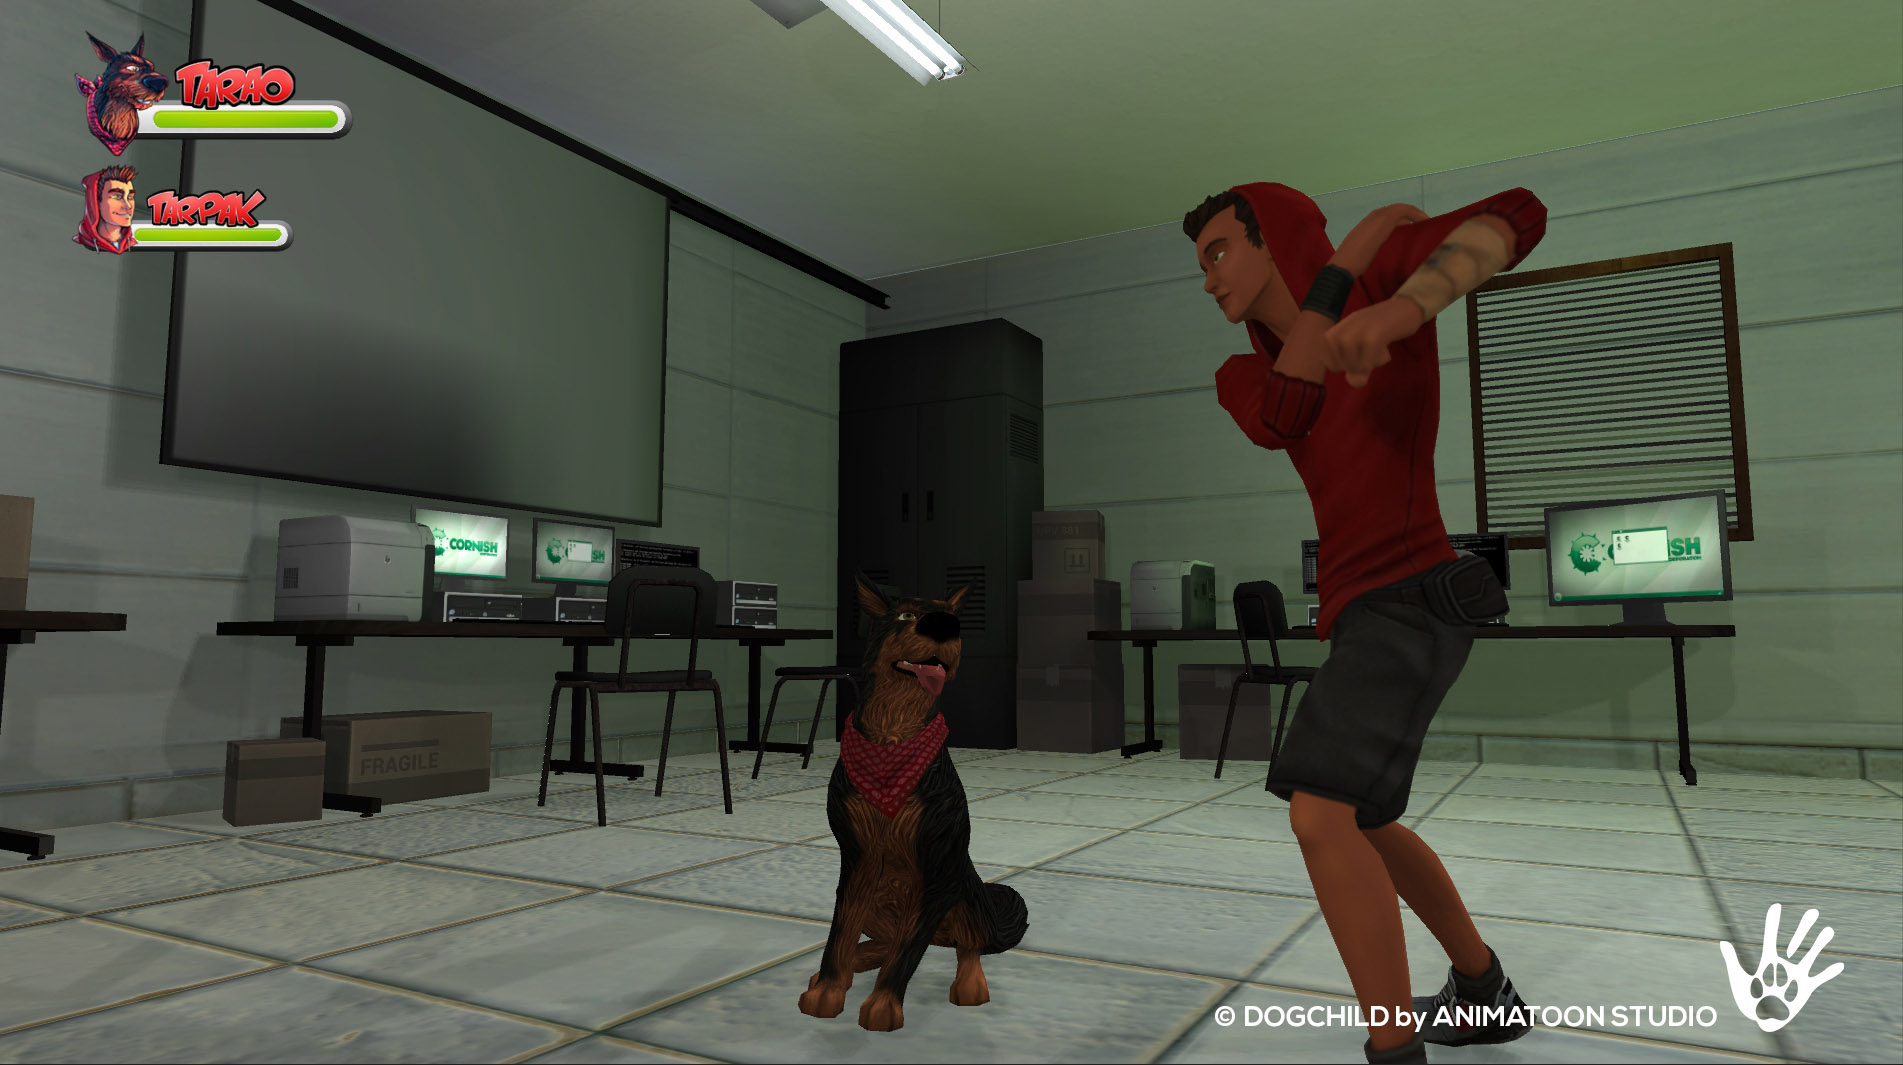 Captura Dogchild Visita Animatoon 02